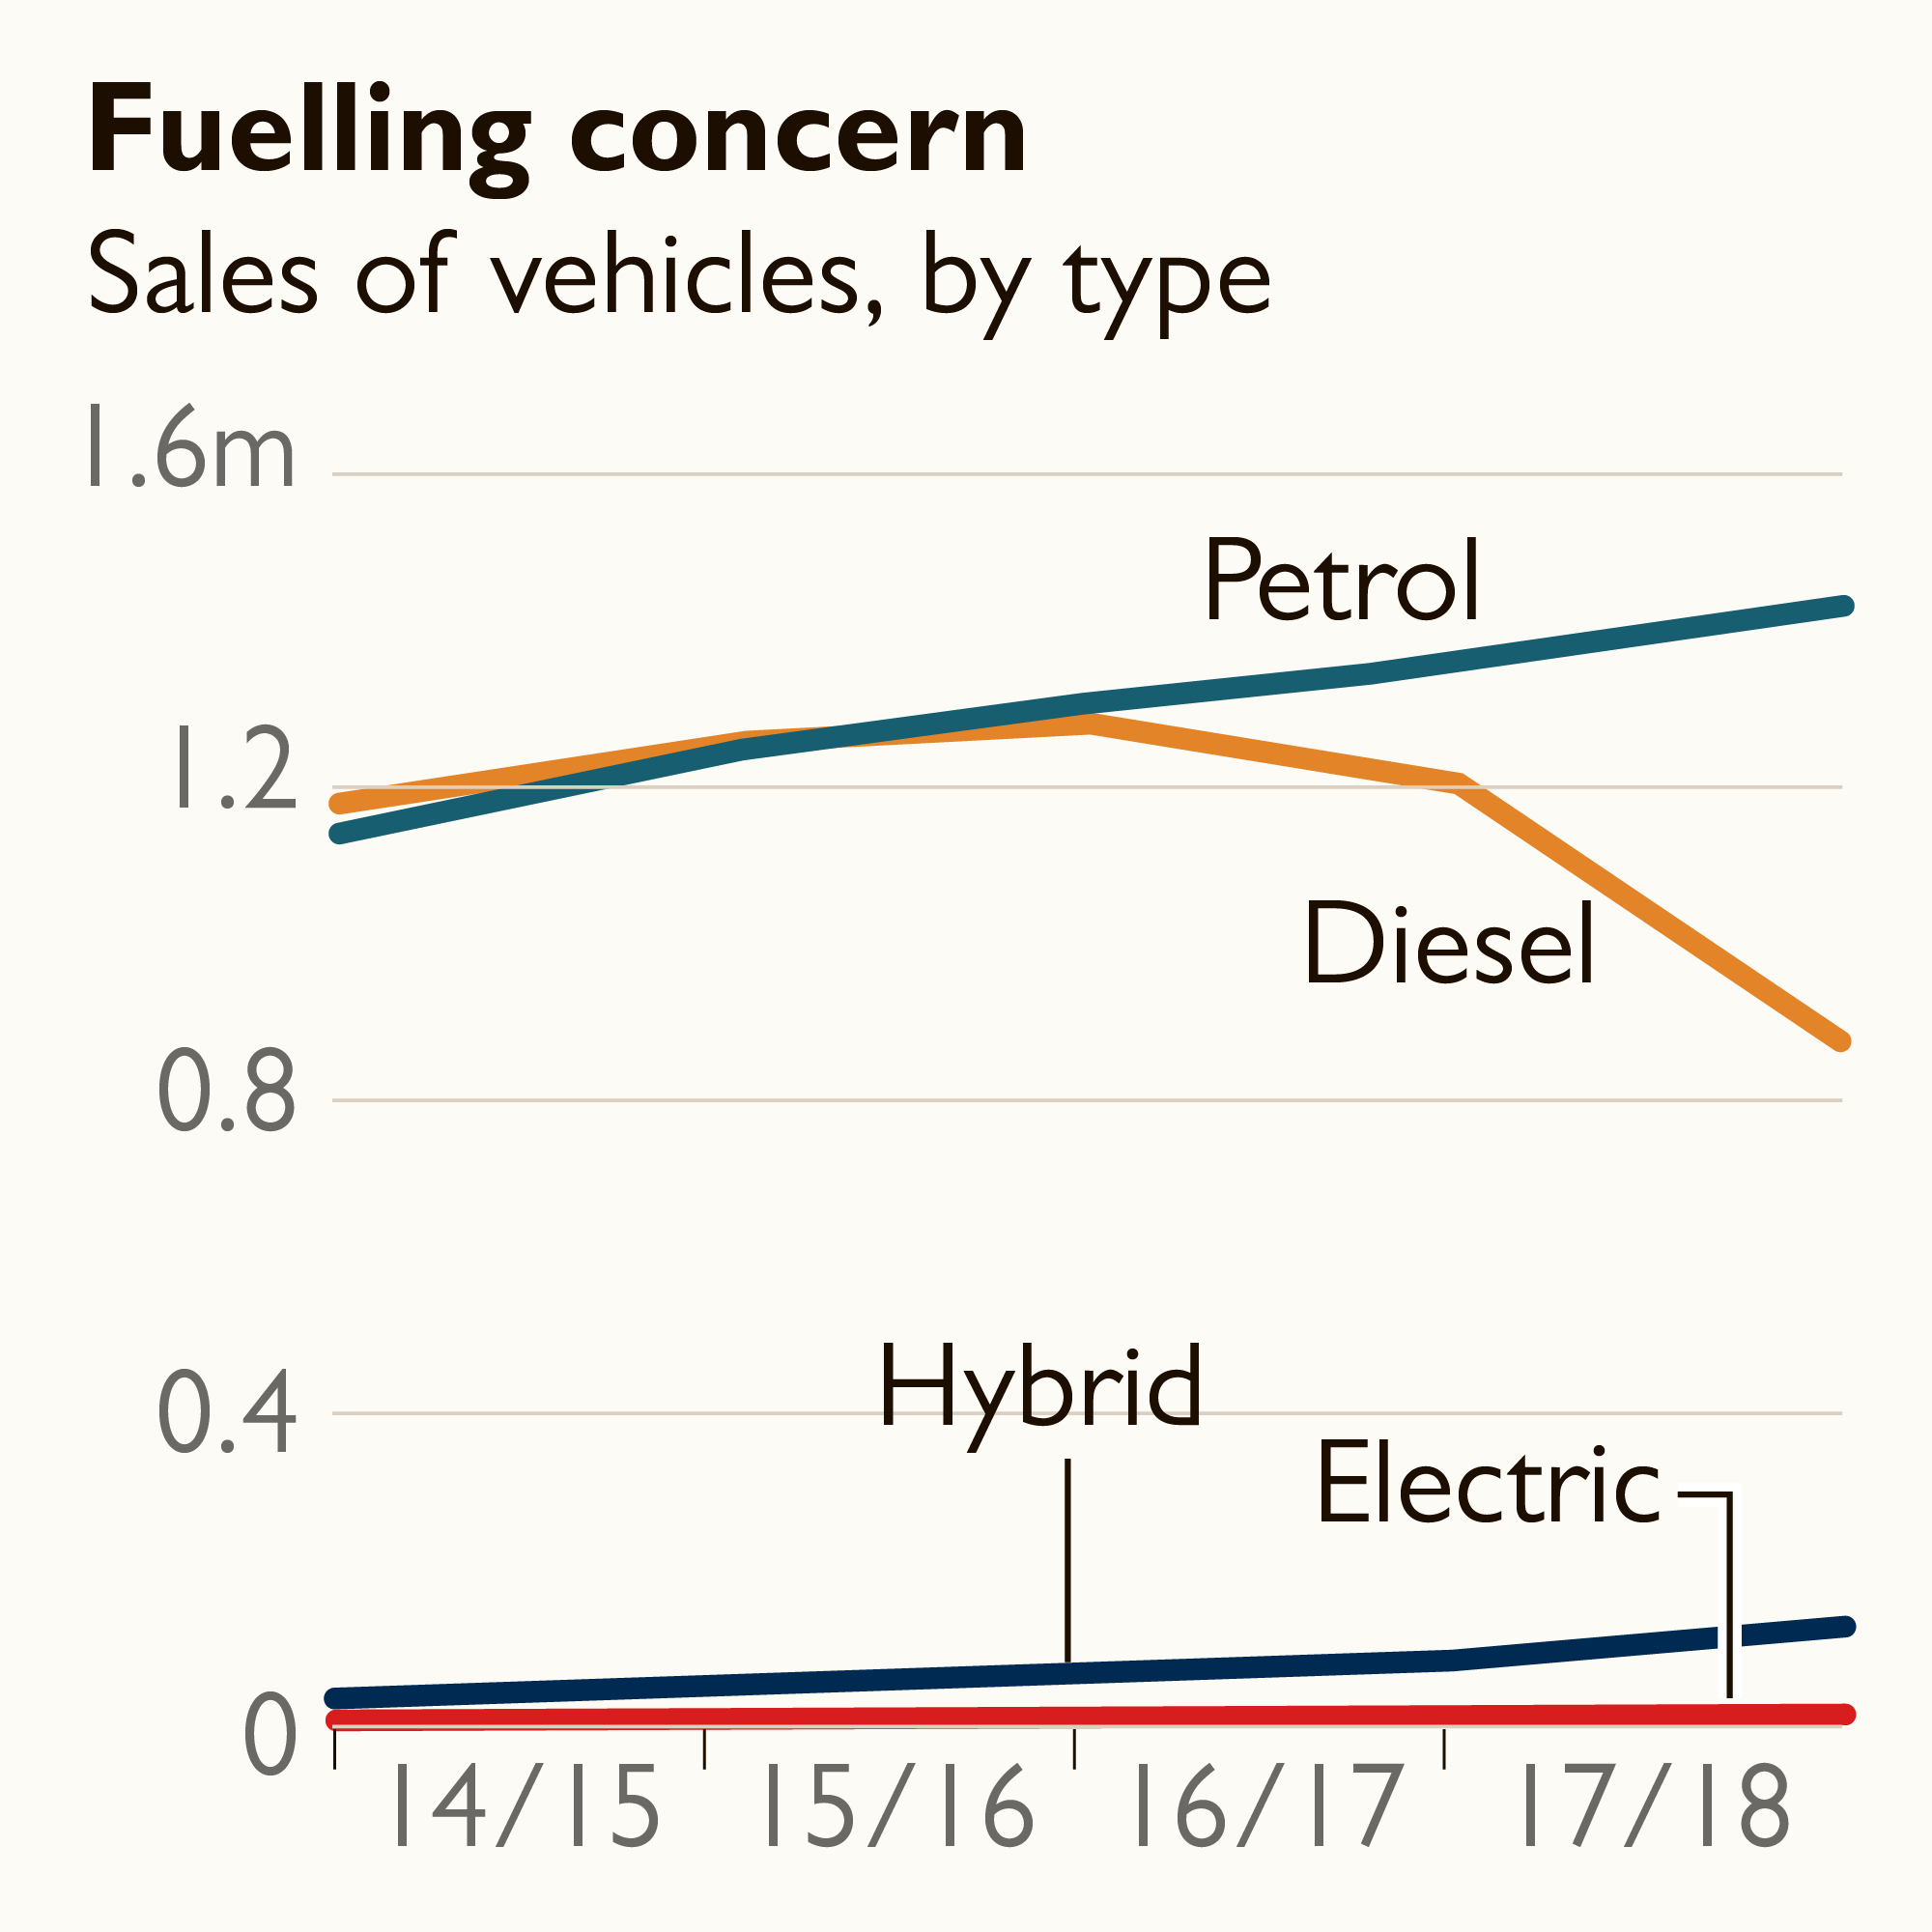 medium resolution of figures show that sales of electric cars those with no exhaust emissions increased by 7 per cent in 2017 18 compared with a year earlier with 878 more